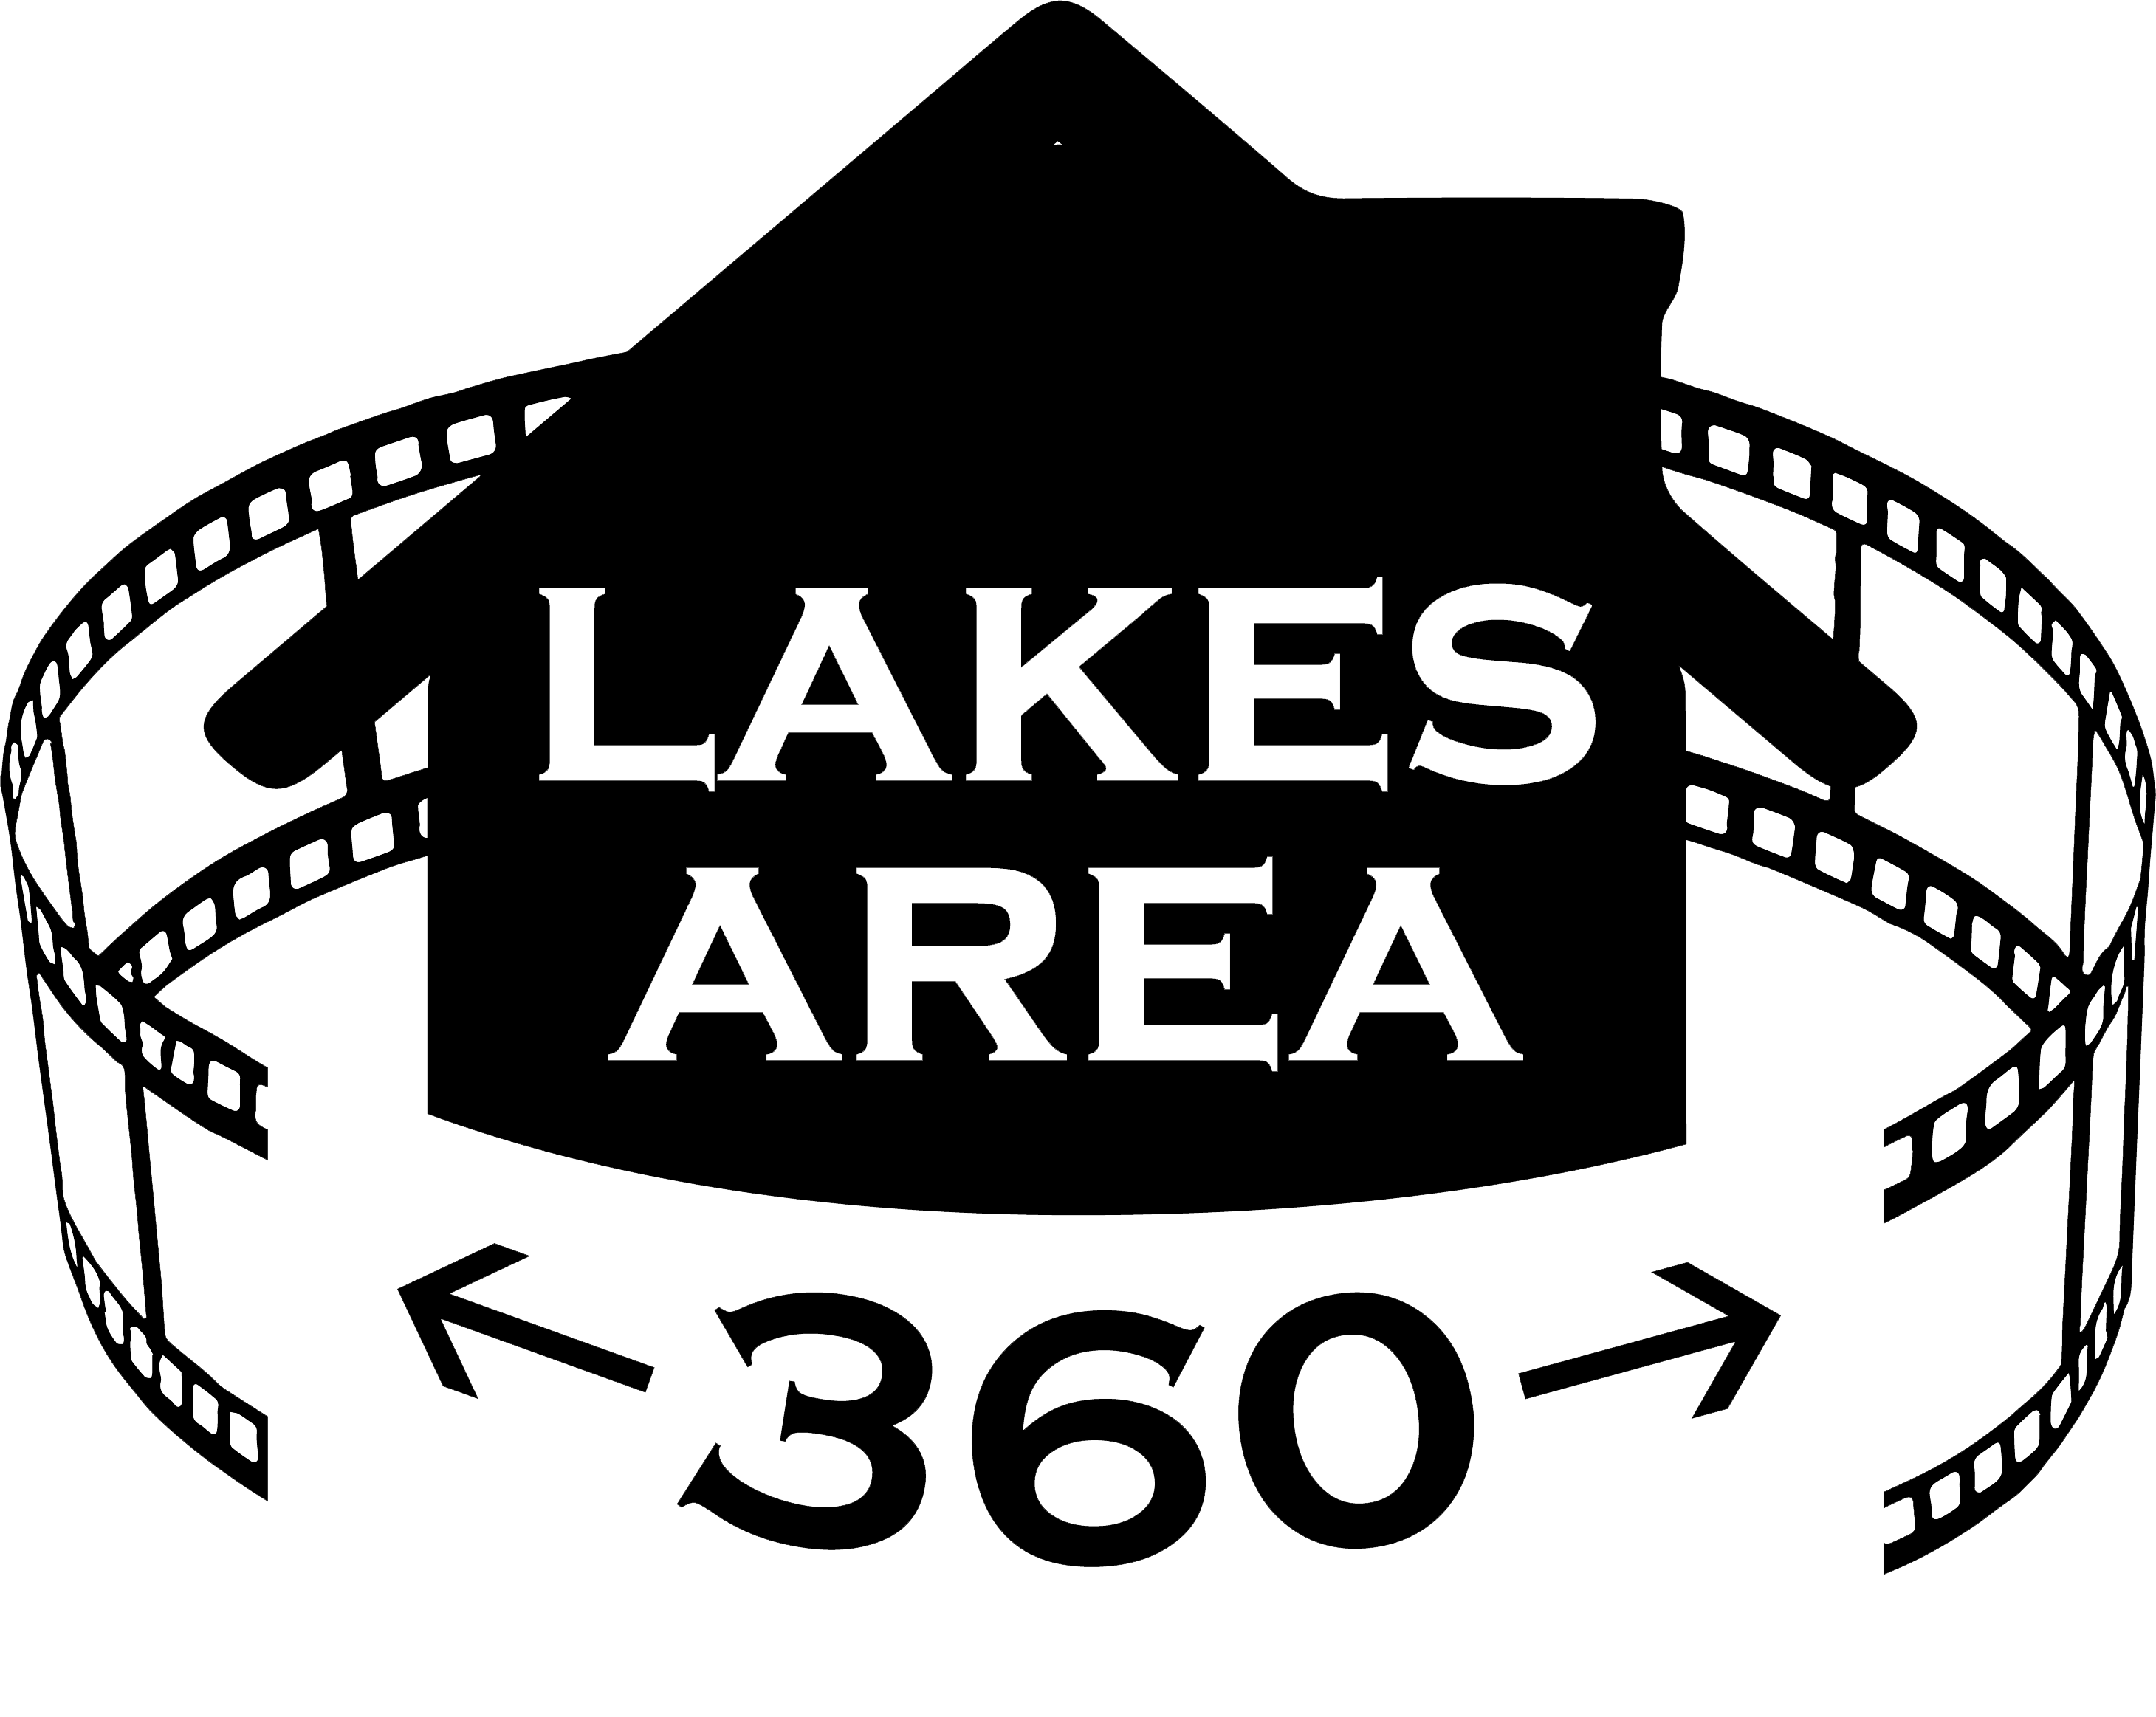 Lakes Area 360 floor plan in Minneapolis St. Paul